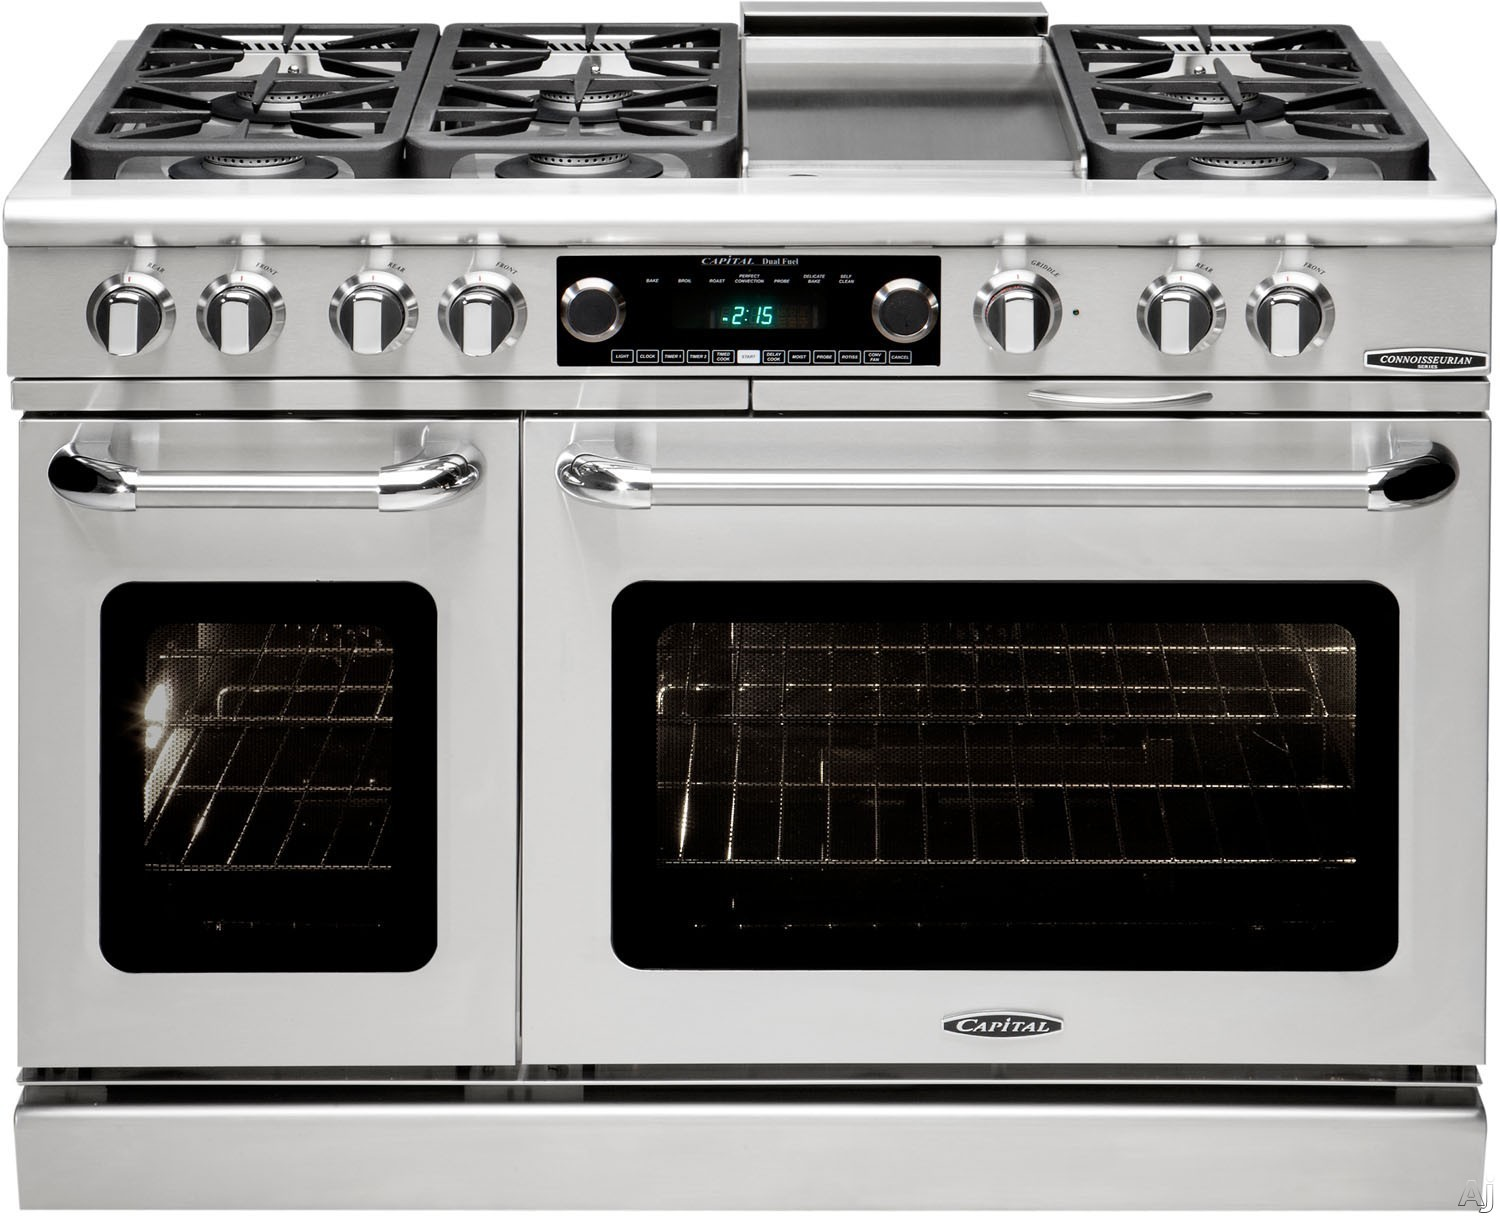 "Capital Connoisseurian Series CSB484G2 48 Inch Pro-Style Dual Fuel Range with 6 Sealed Burners ,12"""" Thermo-Griddle, Moto-Rotisâ""¢ Rotisserie, Dual Kitchen Timers, Meat Probe, Moist Bake Option, 5.4 cu. ft. Main Oven and 2.4 cu. ft. Seconday Oven"" CSB484"